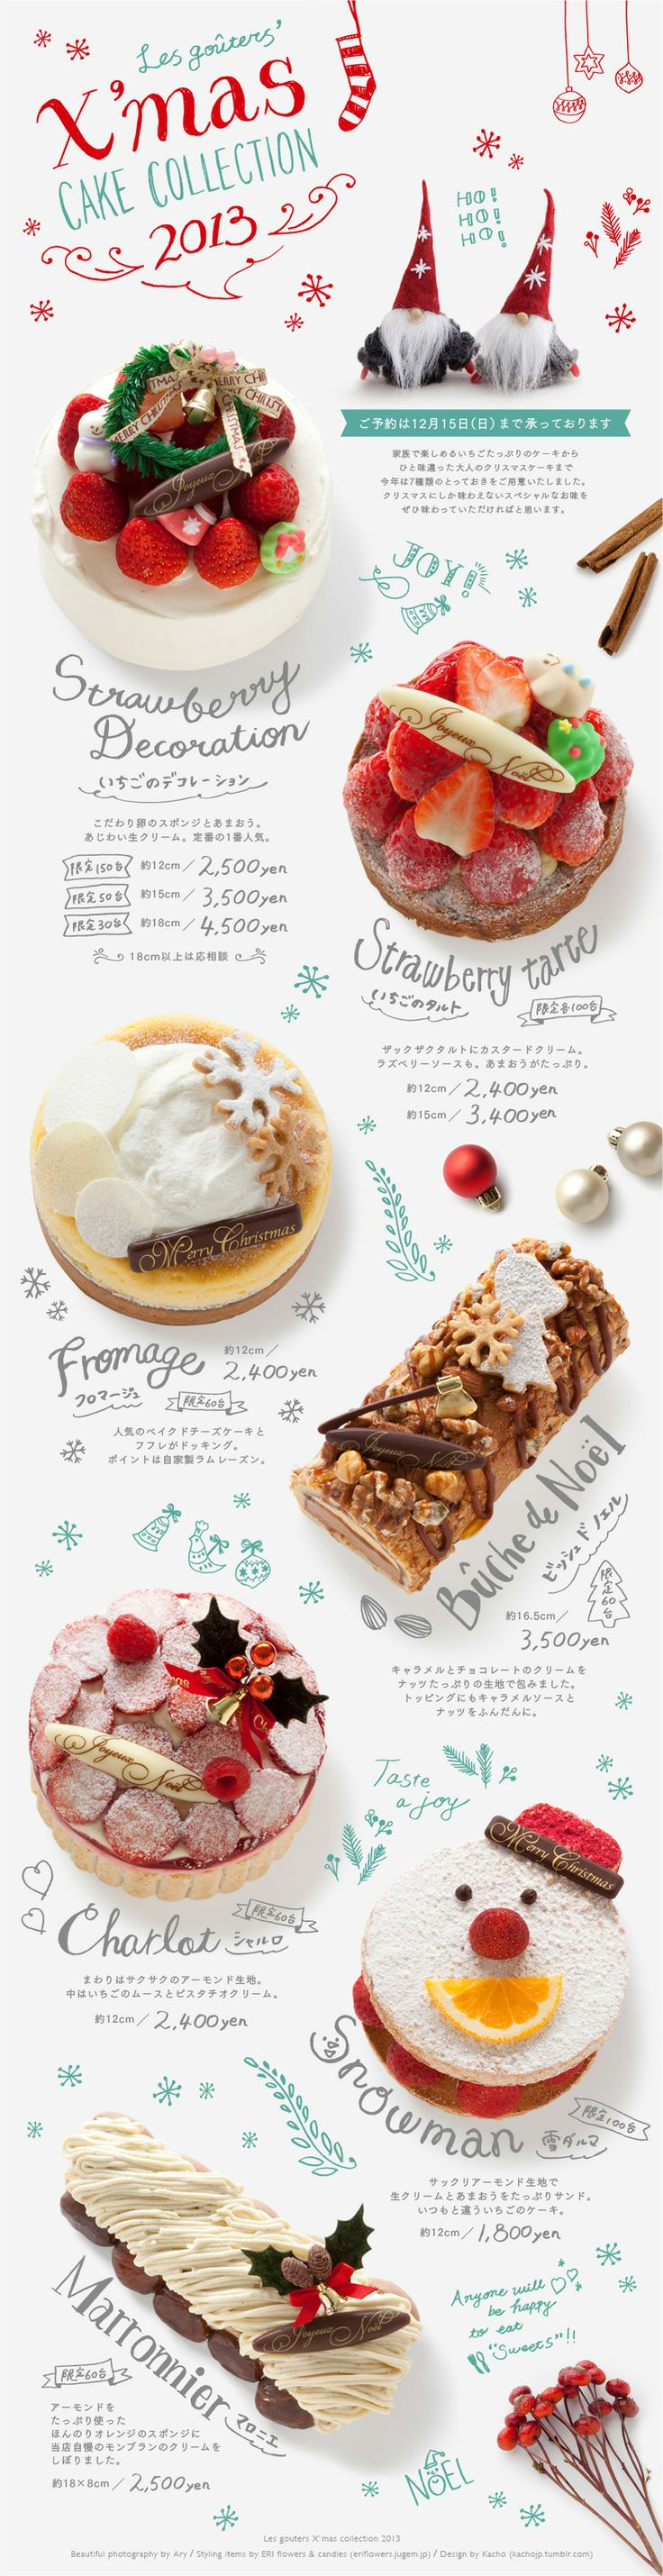 レ・グーテ - Les Gouters - christmas cake 2013 x'mas design http://les-gouters.com/index.htm